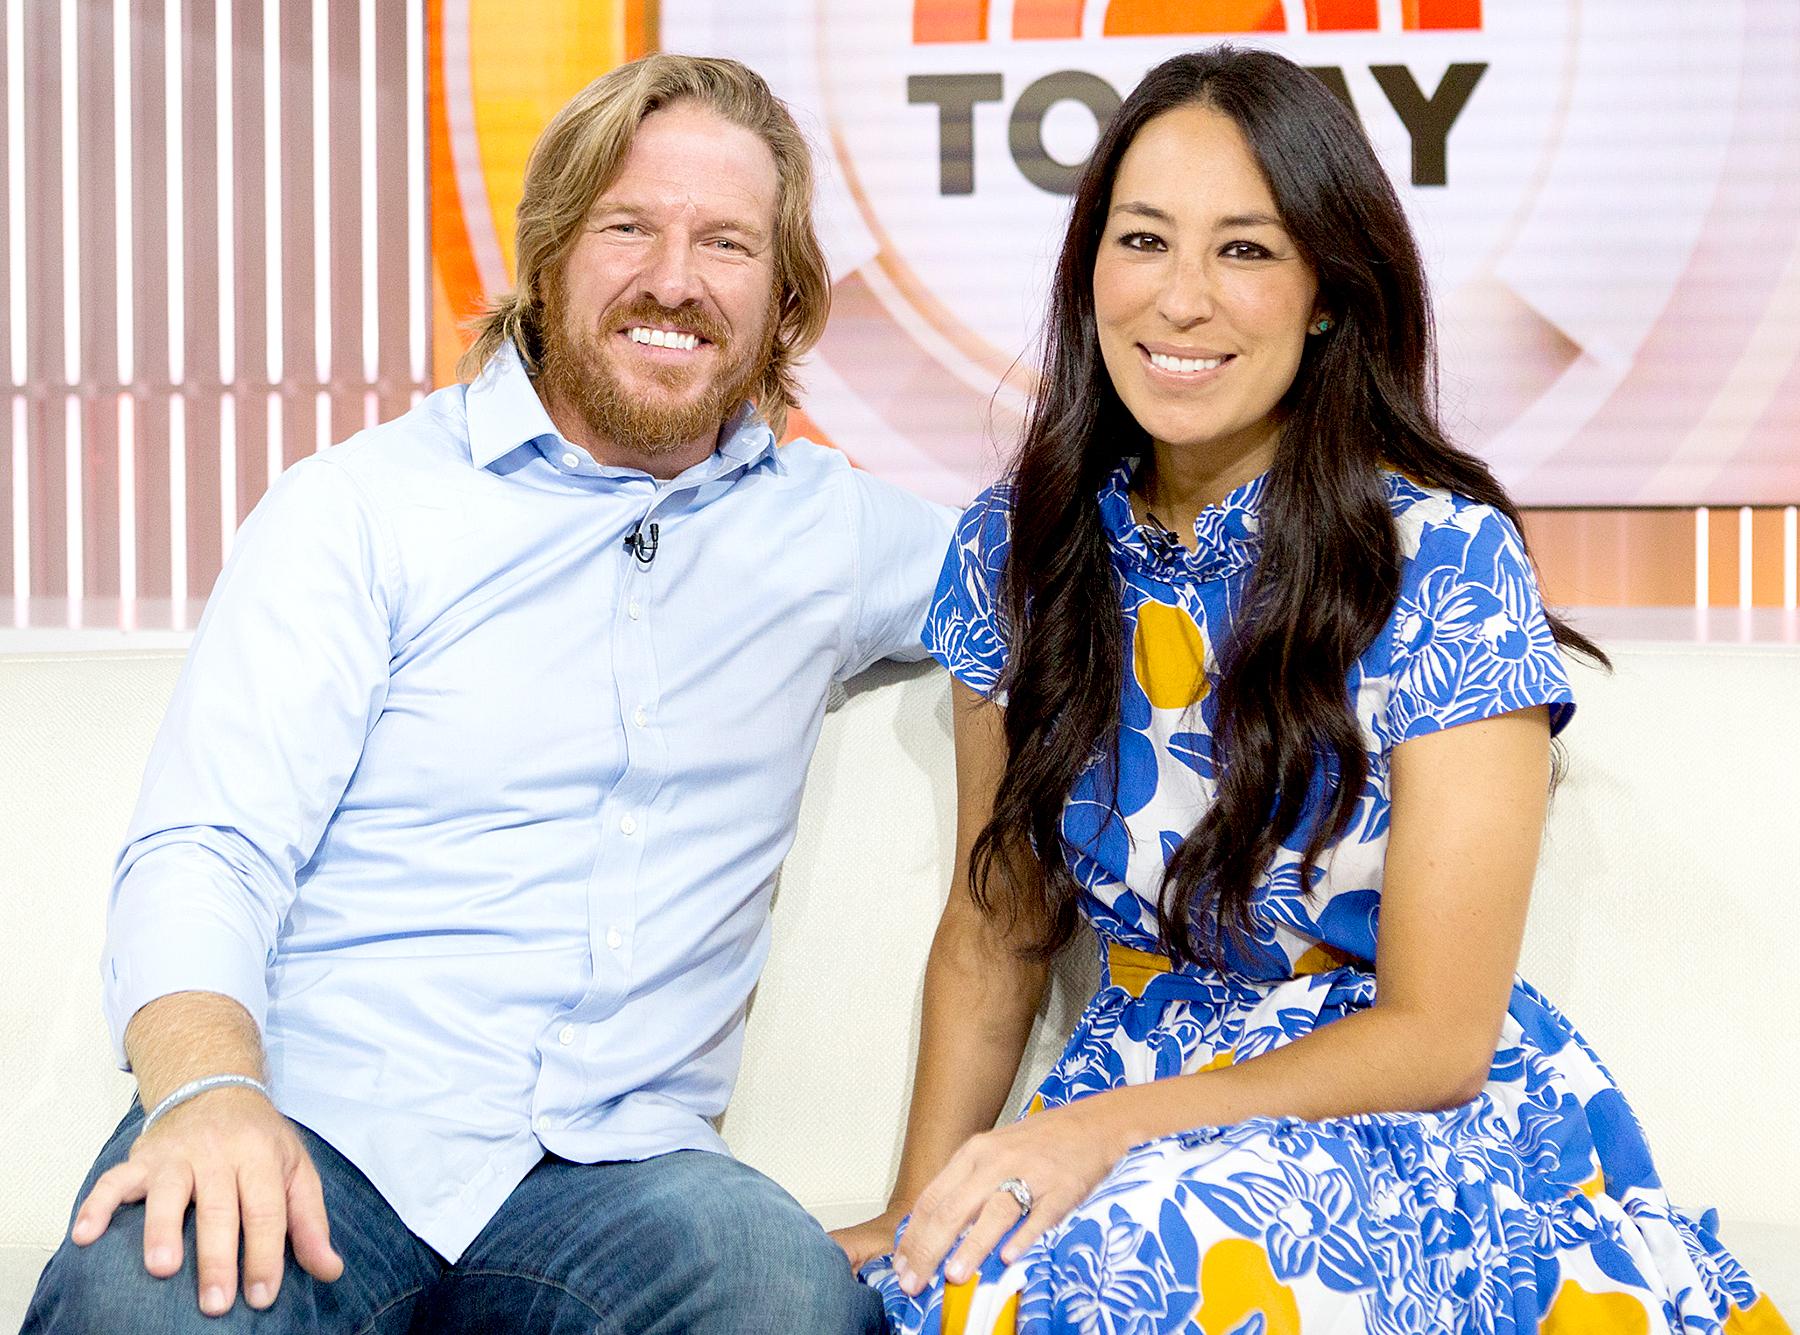 Chip and Joanna Gaines releasing new cookbook called